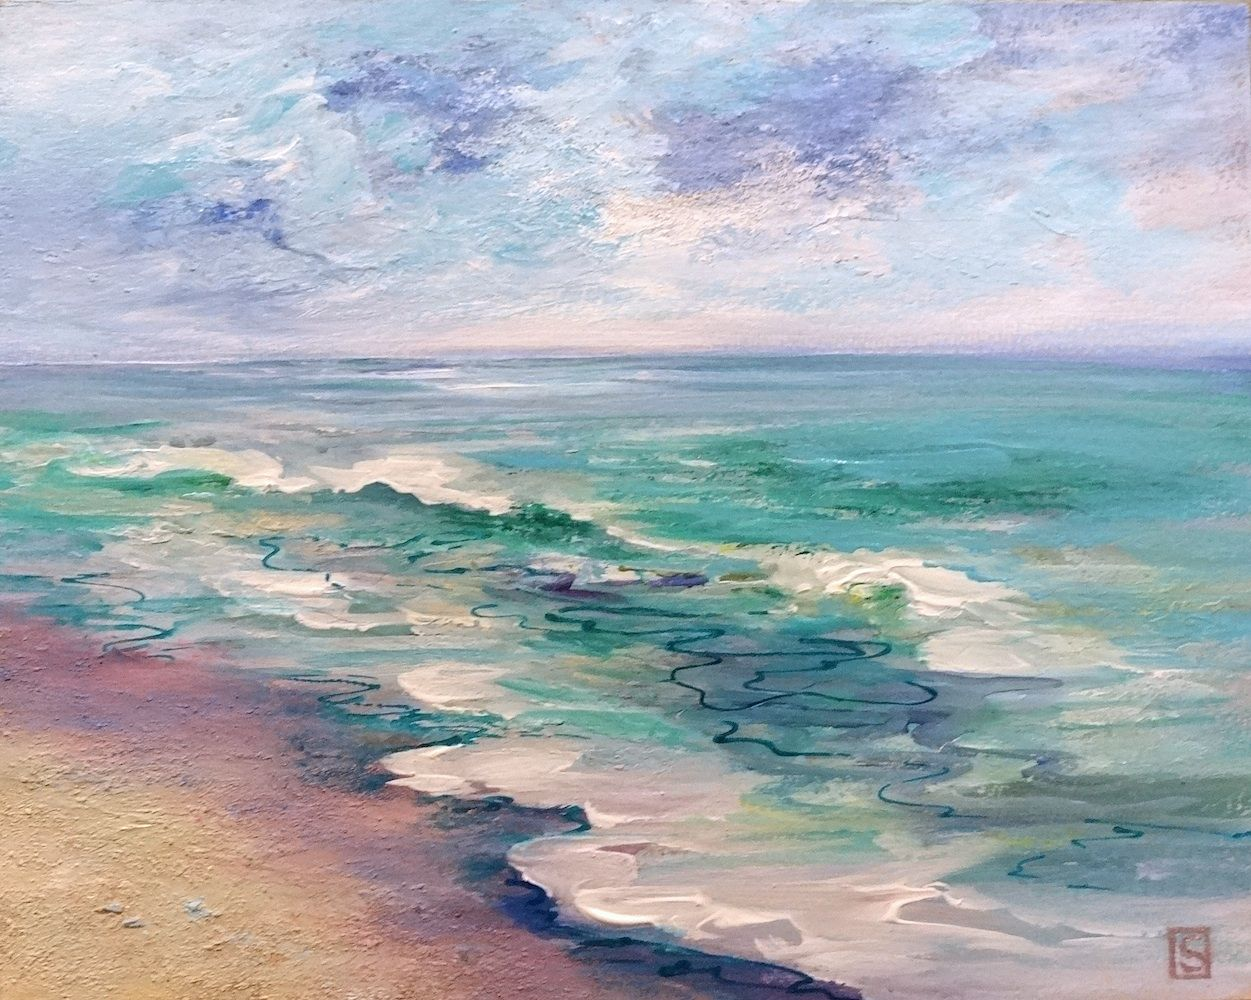 Sea Dean - Paint a Masterpiece: THE OCEAN BECKONS - 30 Paintings in 30 Days # 10 -...